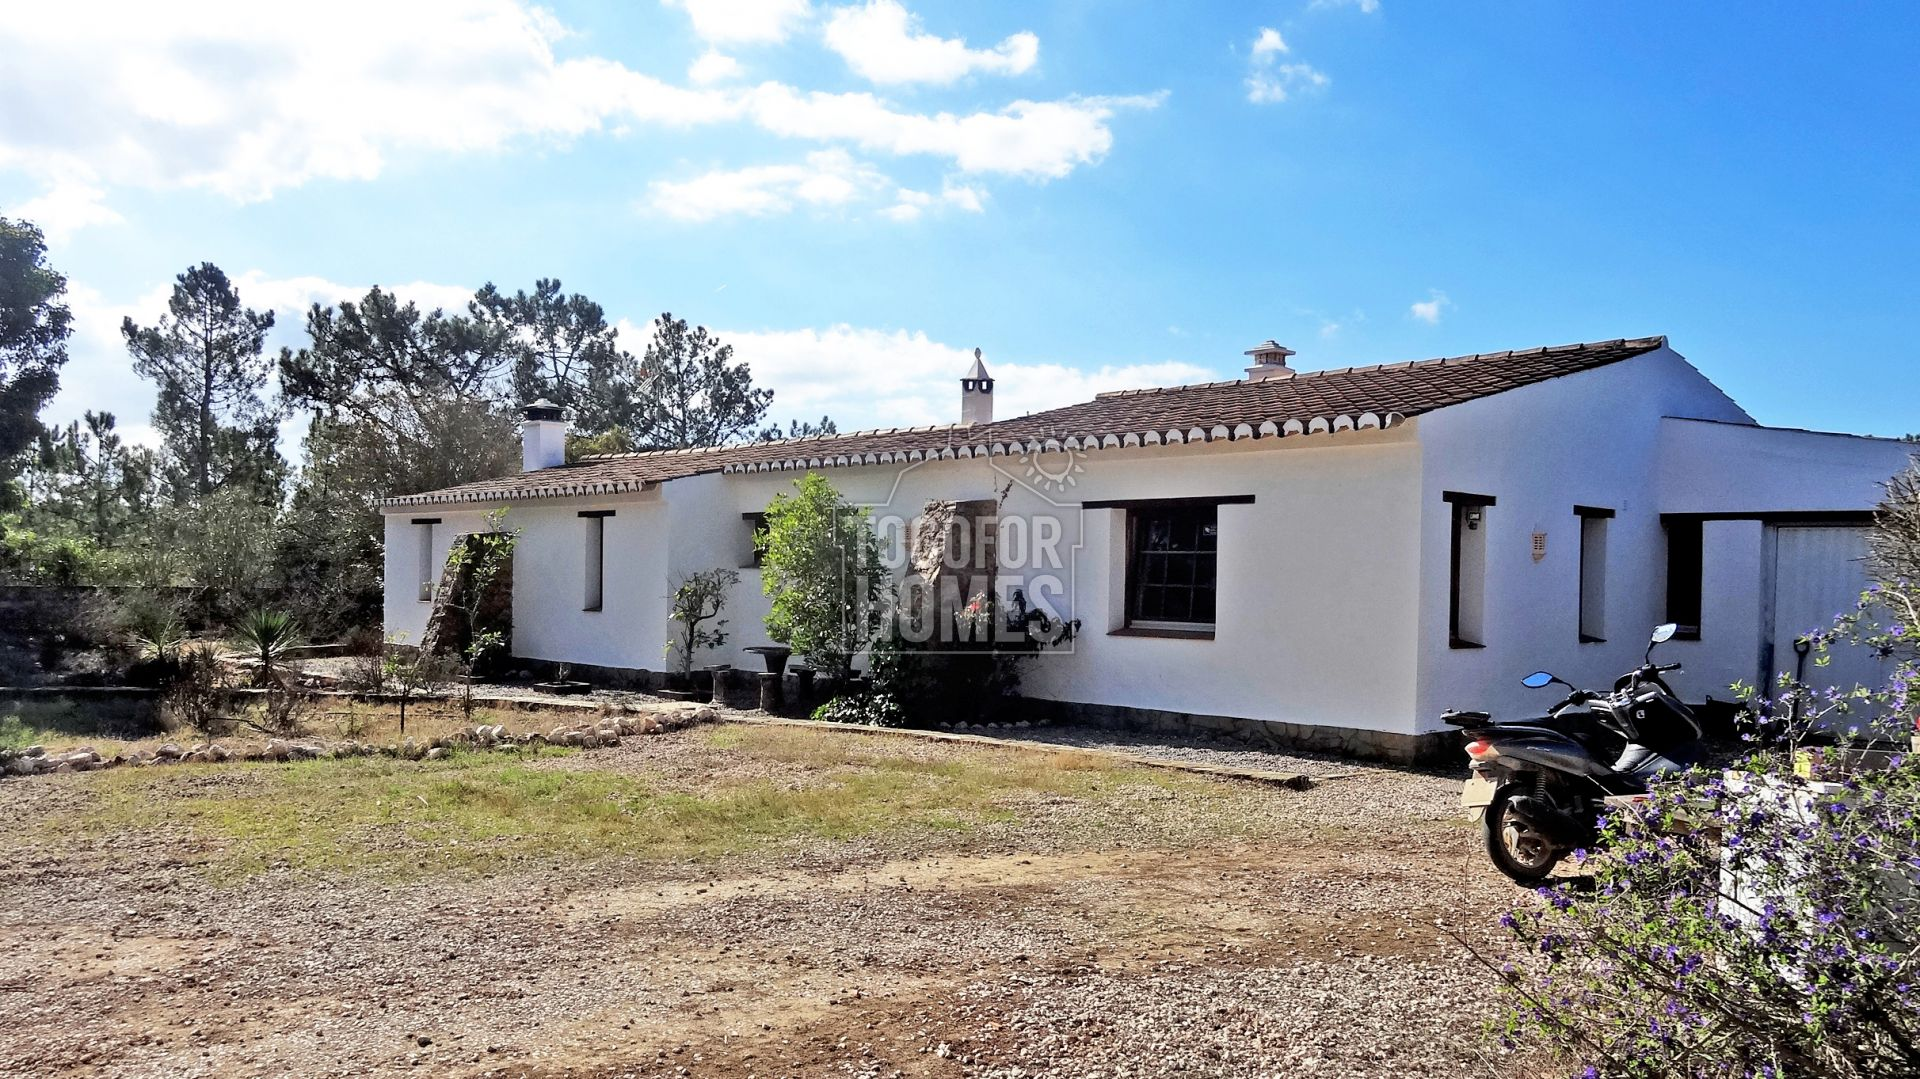 LG989 - O2 bedroom country house on huge plot in spectacular location 250m from sea, Rogil, West Coast